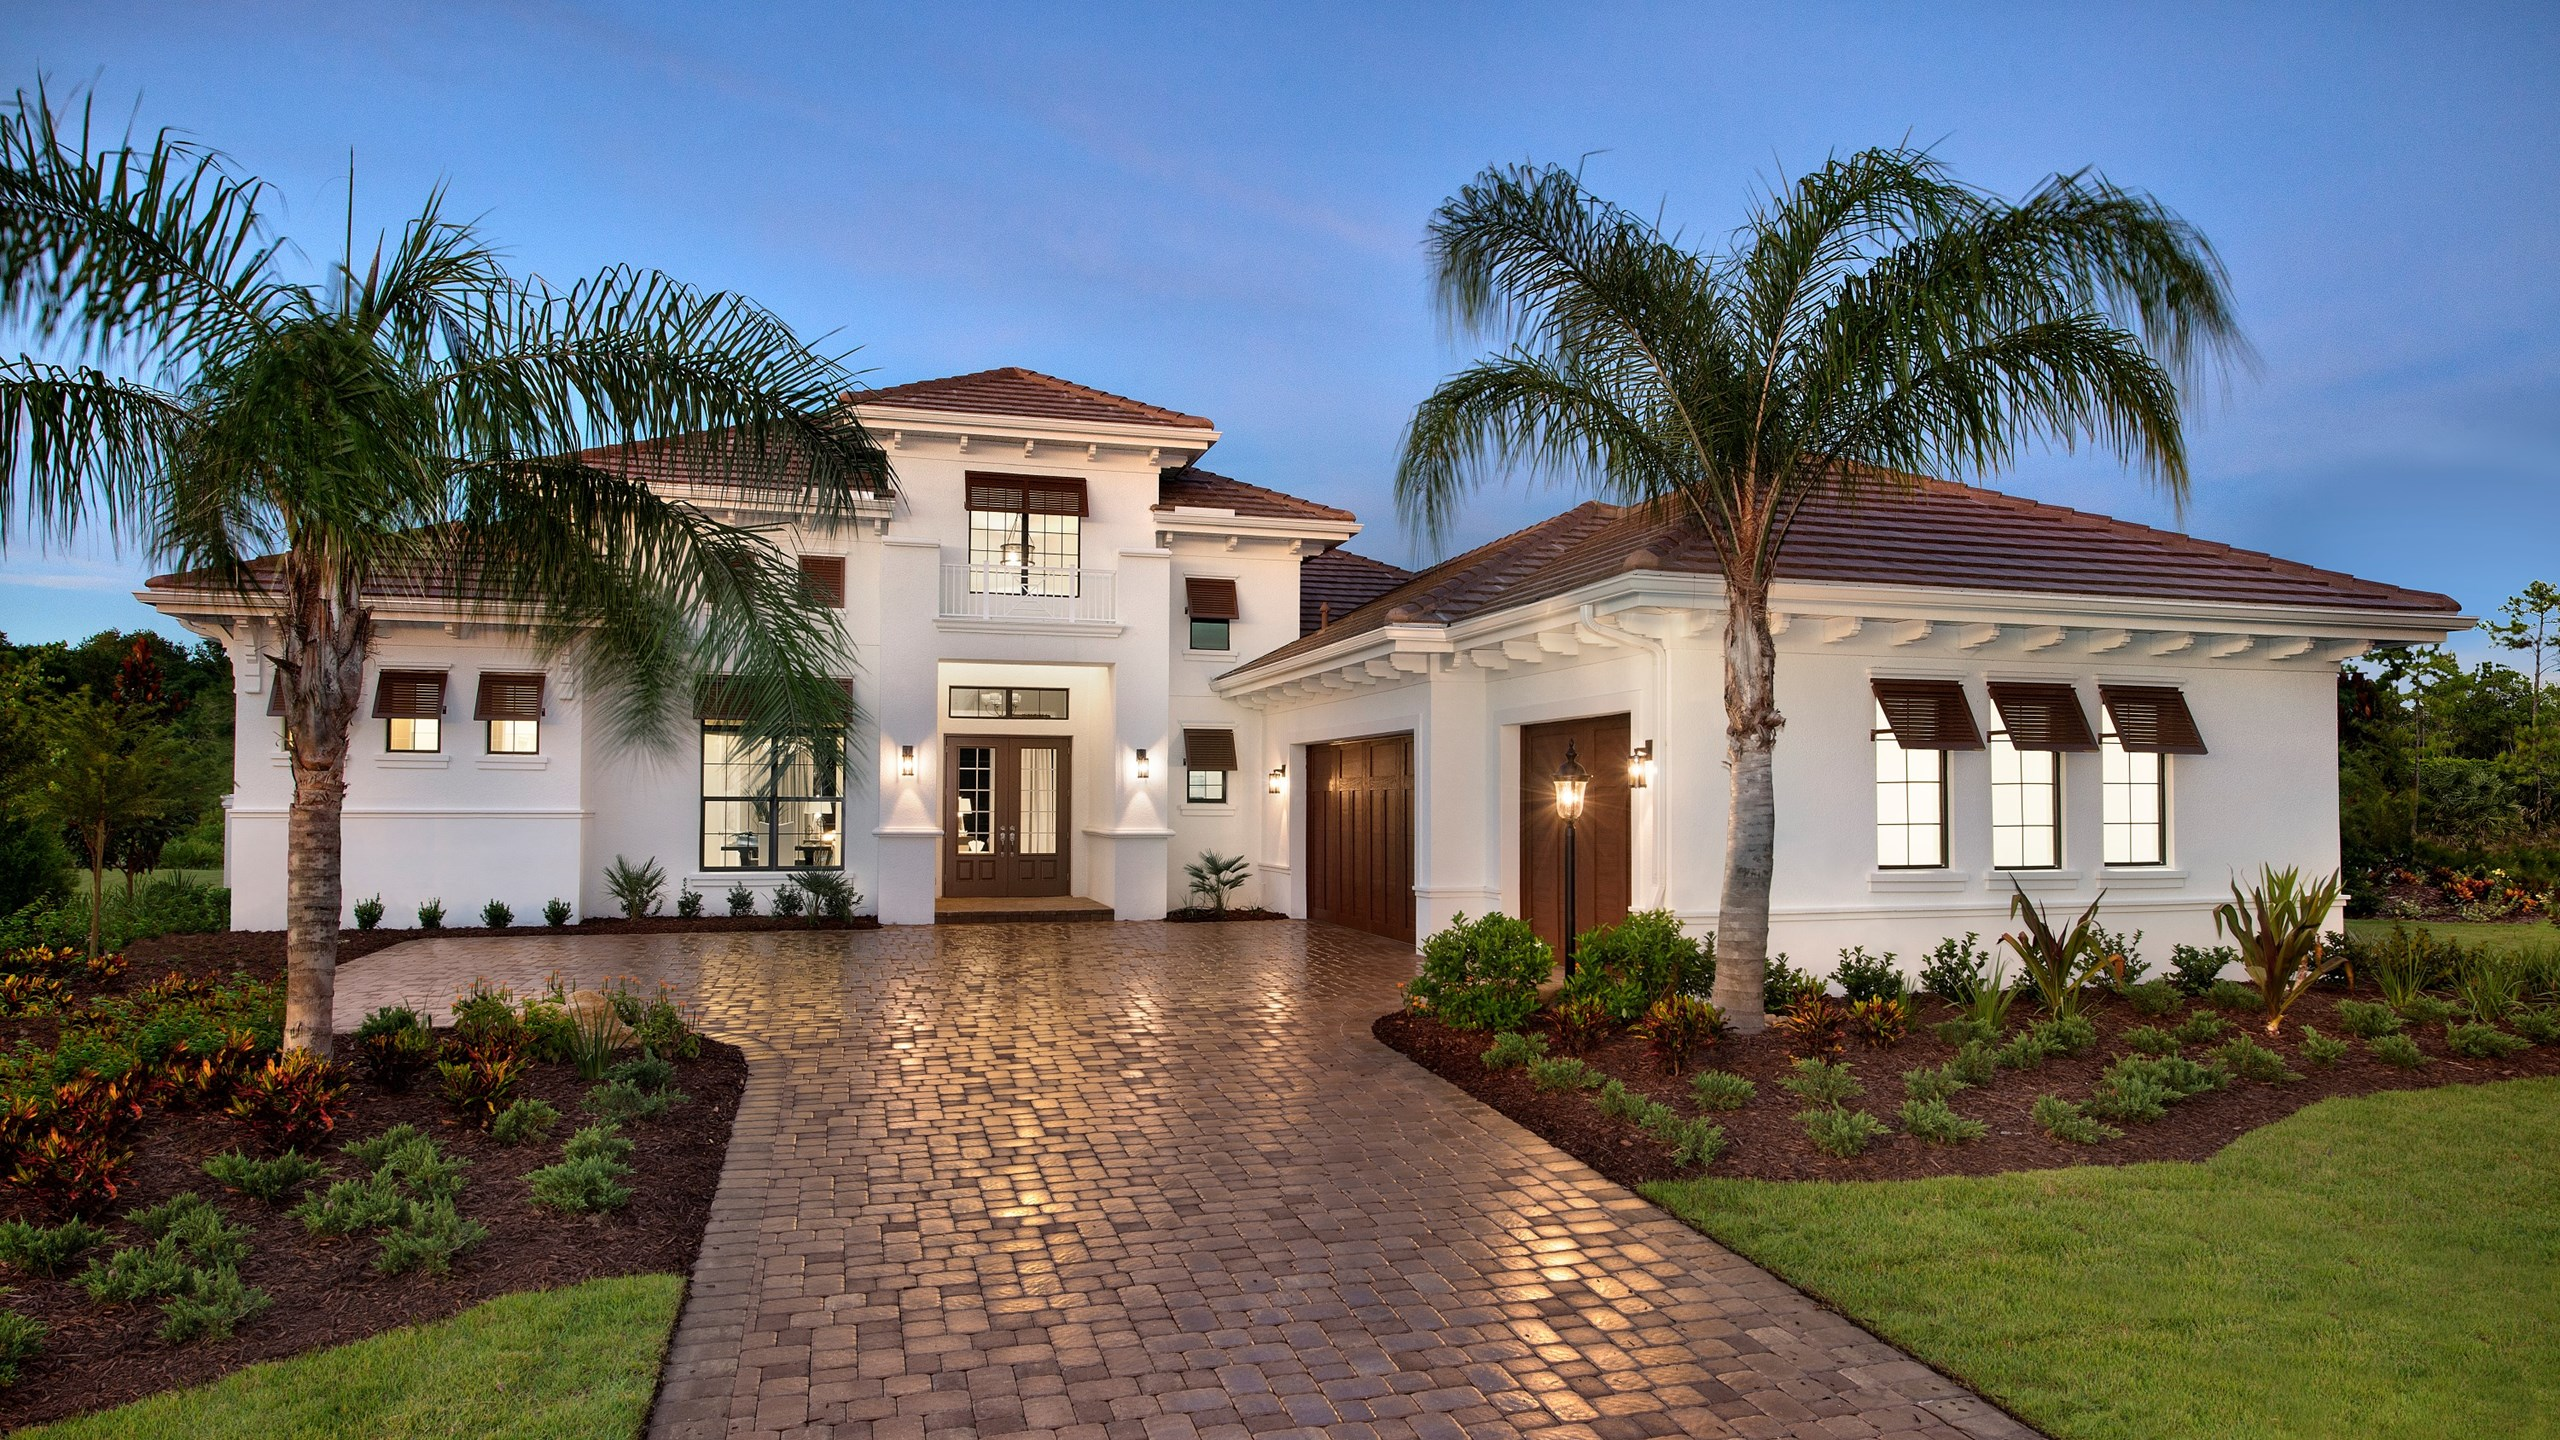 New Home in Lakewood Ranch, the Greatest County in the World!